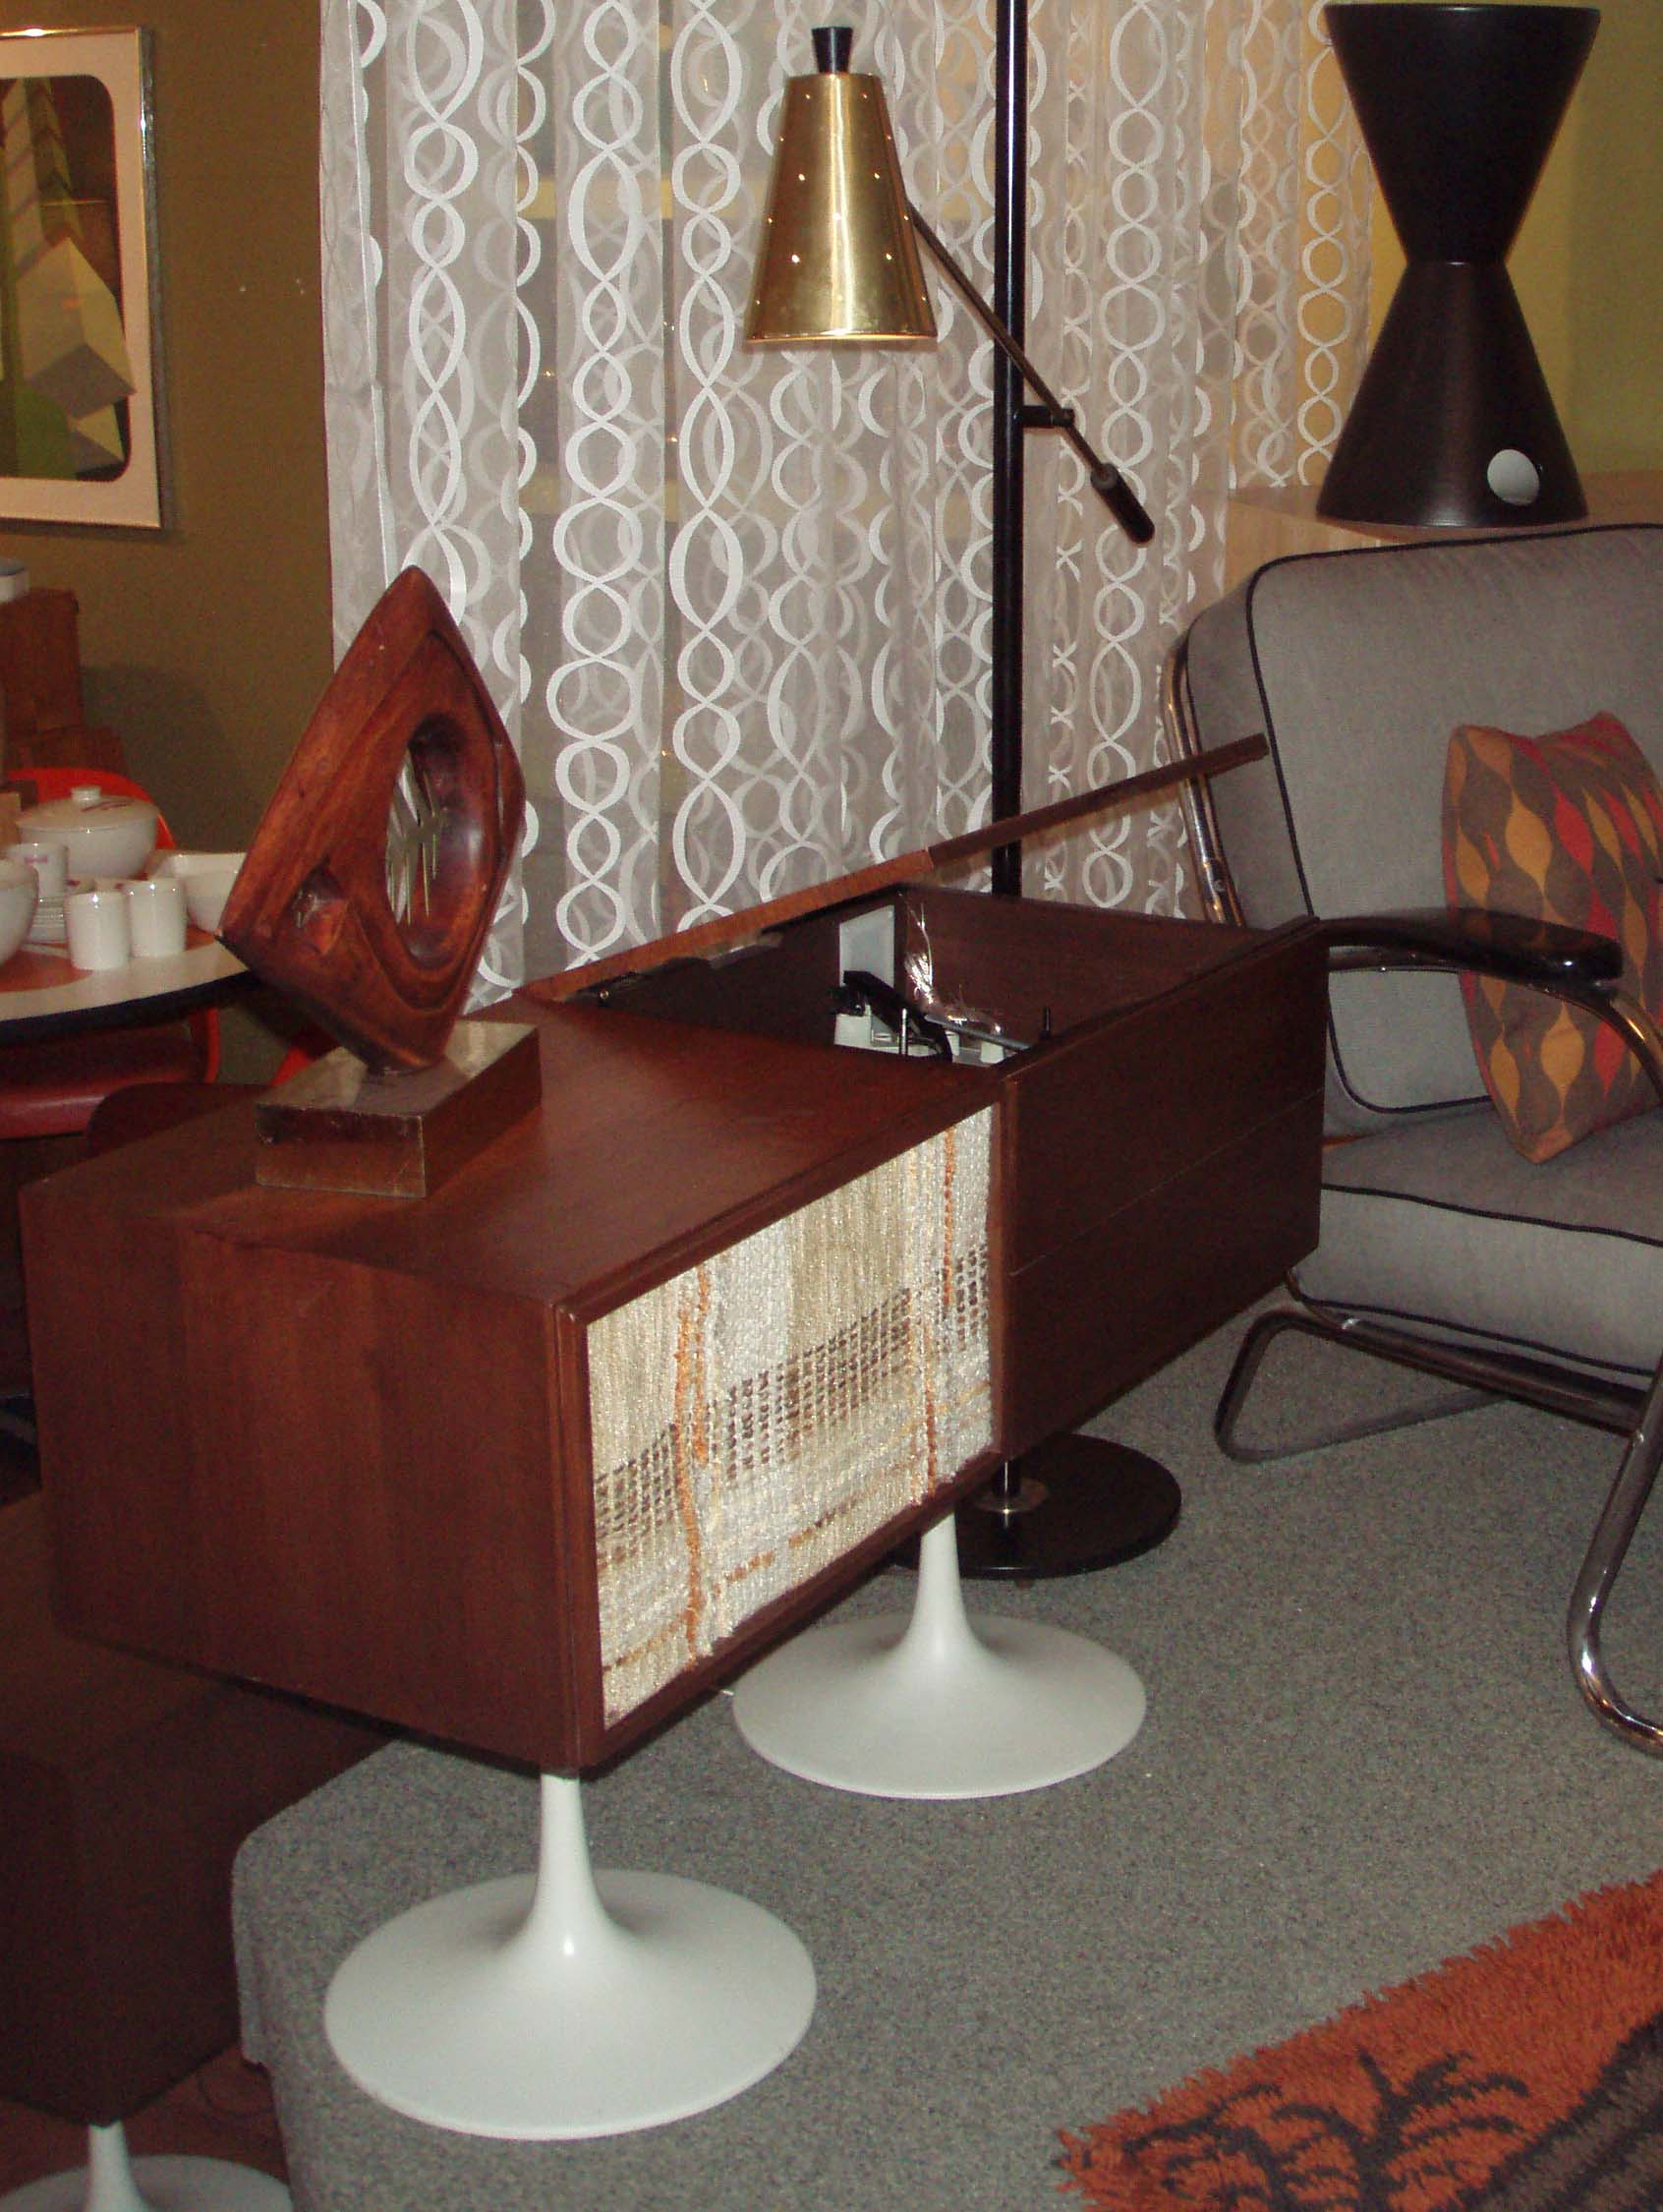 Vintage Hi-Fi 3pc Saarinen pedestal and teak stereo cabinet, mfg by Cambridge Soundworks, distribted by JC Penny's-late 1960's-original nubby fabric on speaker covers and cool pop up component/turntable door $495.00 works, great condition